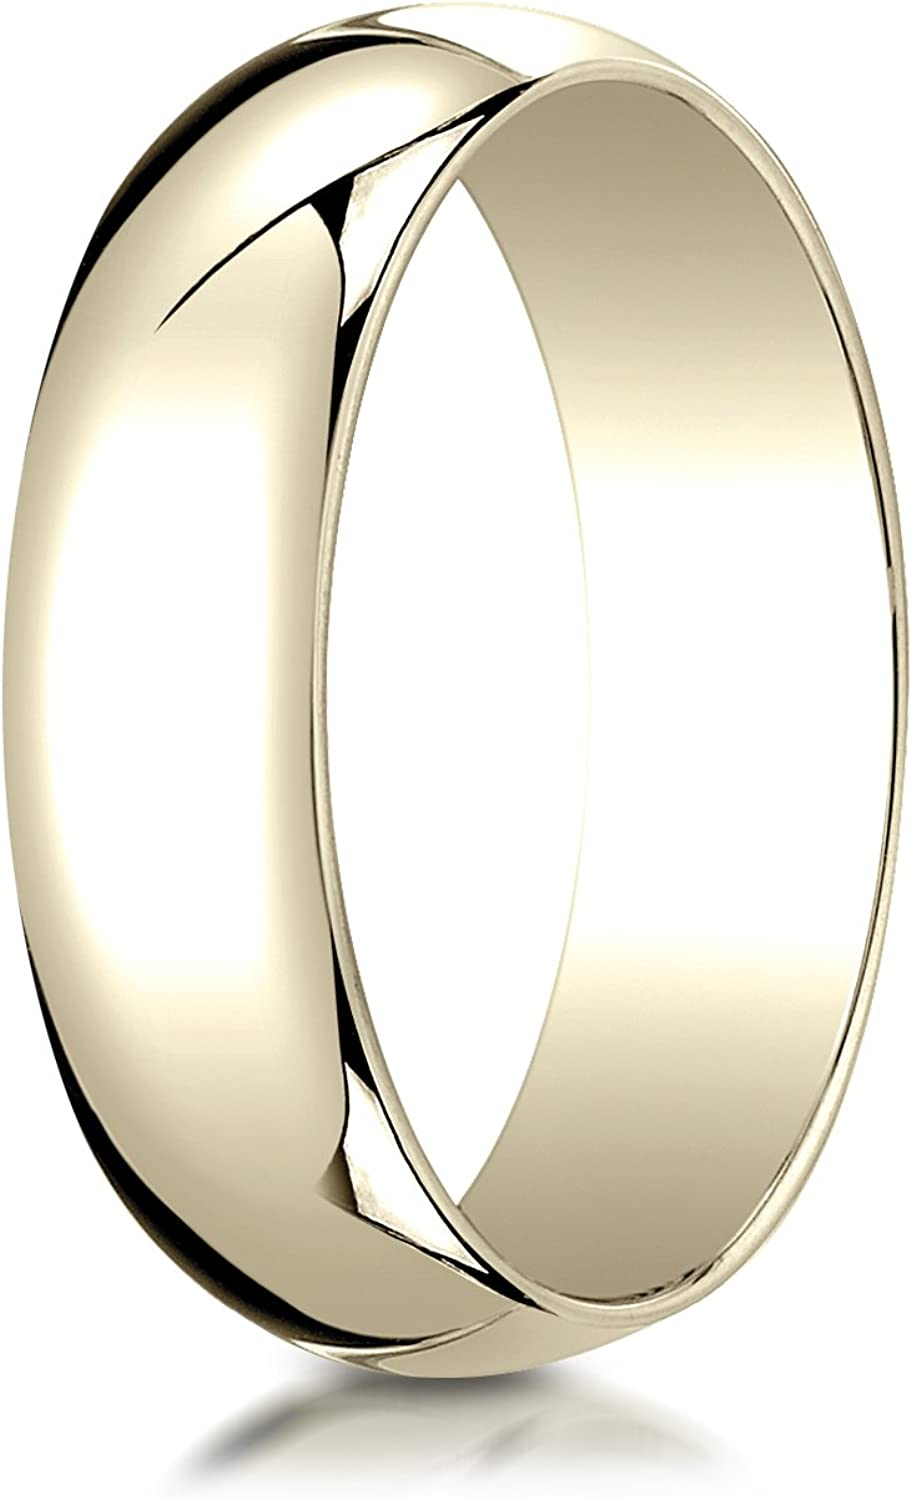 PriceRock 10K Yellow Gold 6mm Slightly Domed Traditional Oval Wedding Band Ring for Men /& Women Size 4 to 15